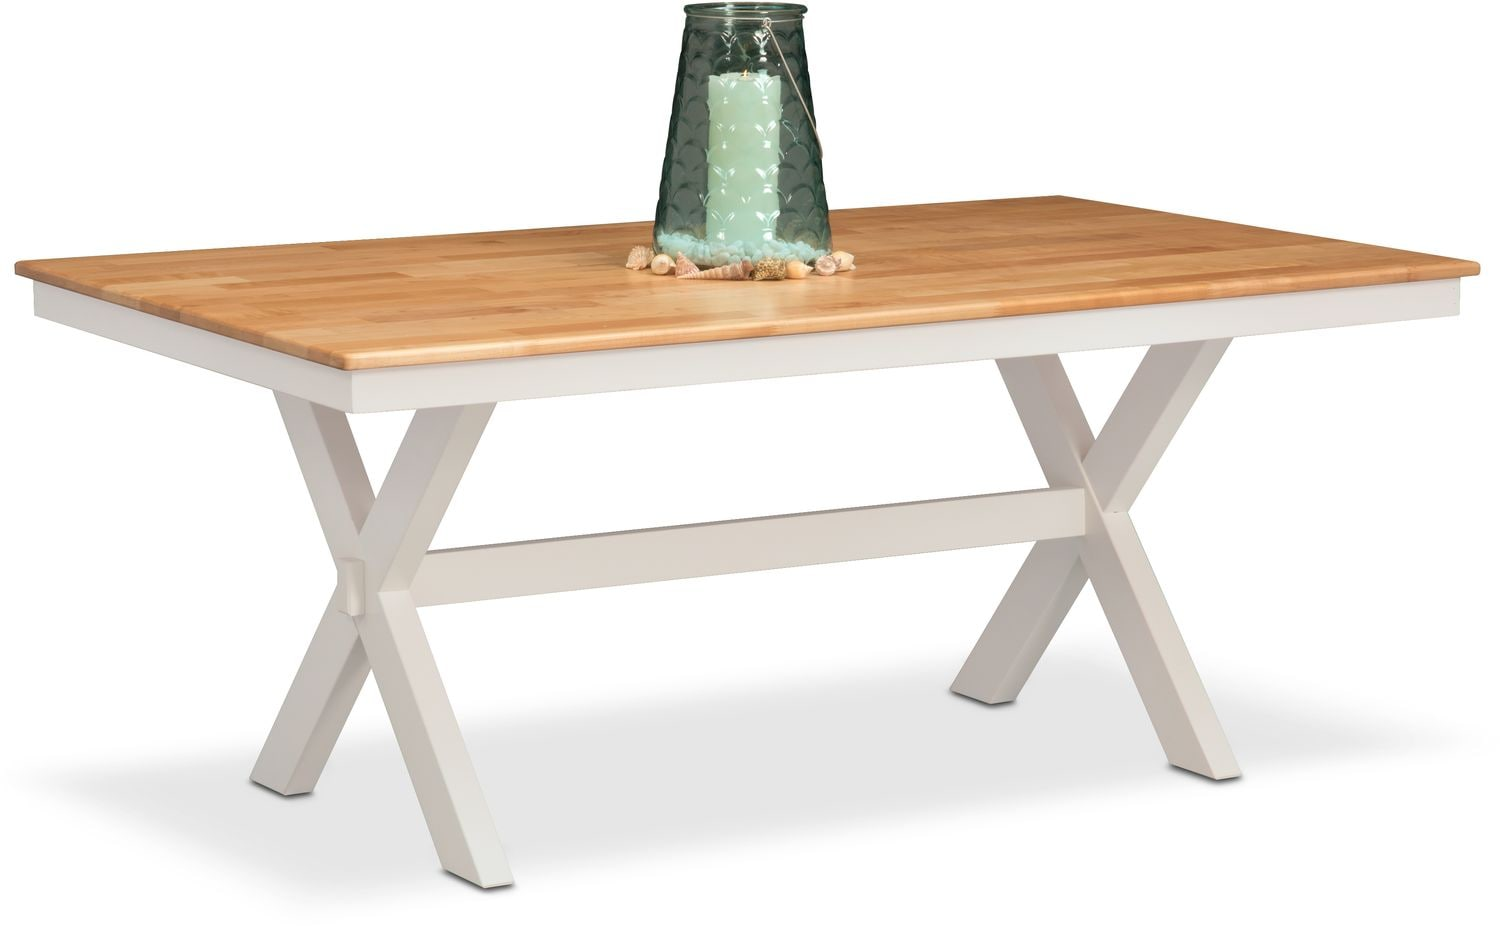 Image of item Nantucket Trestle Table - Maple and White  sc 1 st  Value City Furniture & Nantucket Trestle Table | Value City Furniture and Mattresses